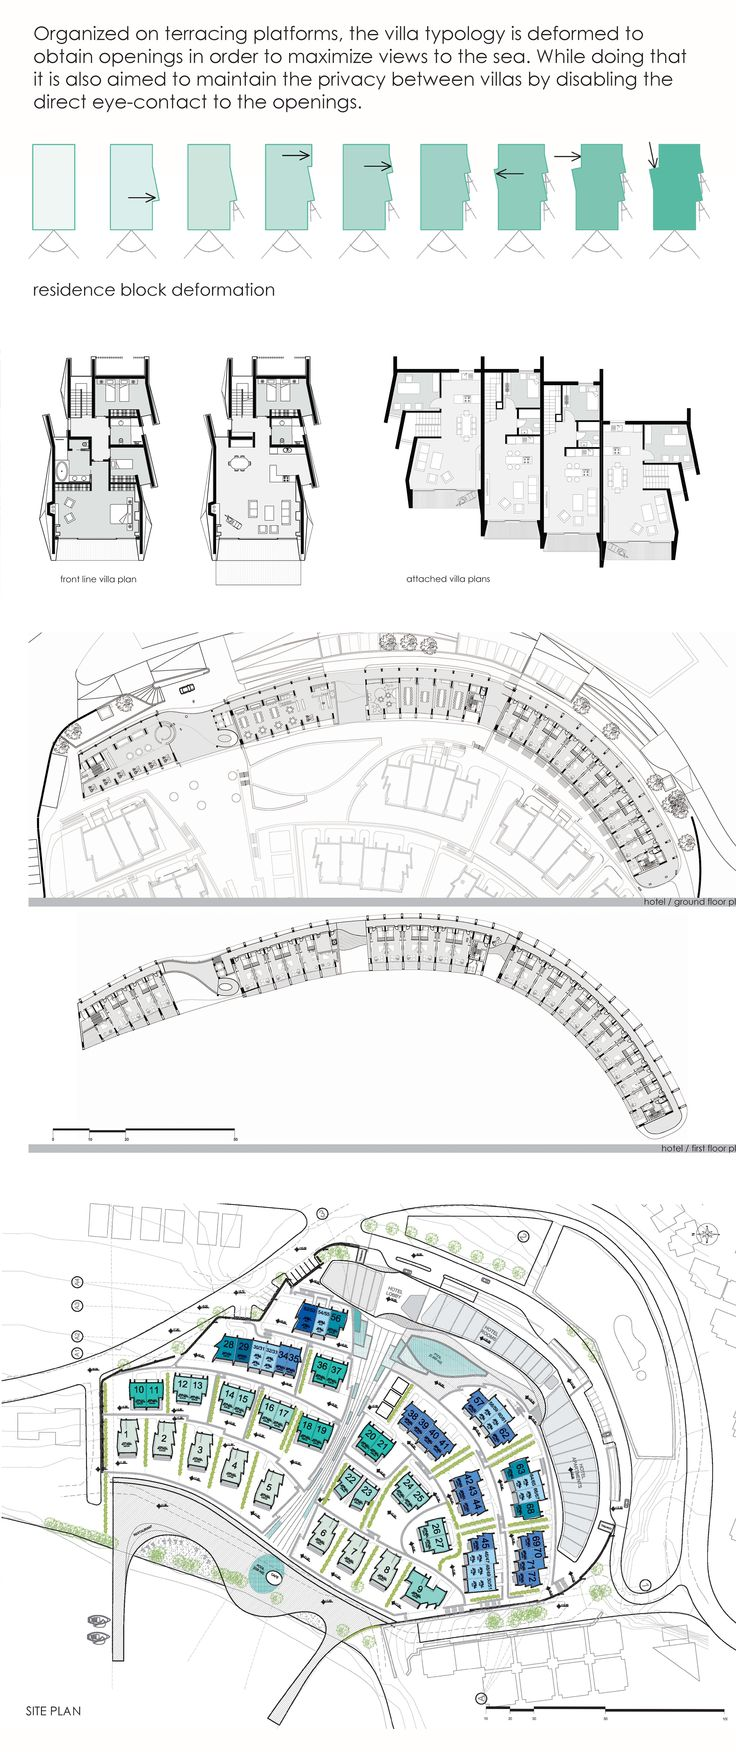 Swissotel Resort Bodrum Beach hotel, a twisting structure, is located on the highest point of the site and serves as the entry gateway to the development.  #hotel #hoteldesign #architecture #architecturaldrawing #GADarchitecture #GAD #interiordesign #turkey #swissotel #turkiye #architect #mimar #mimarlik #pool #plans #villa #bodrum #luxury #largeimage